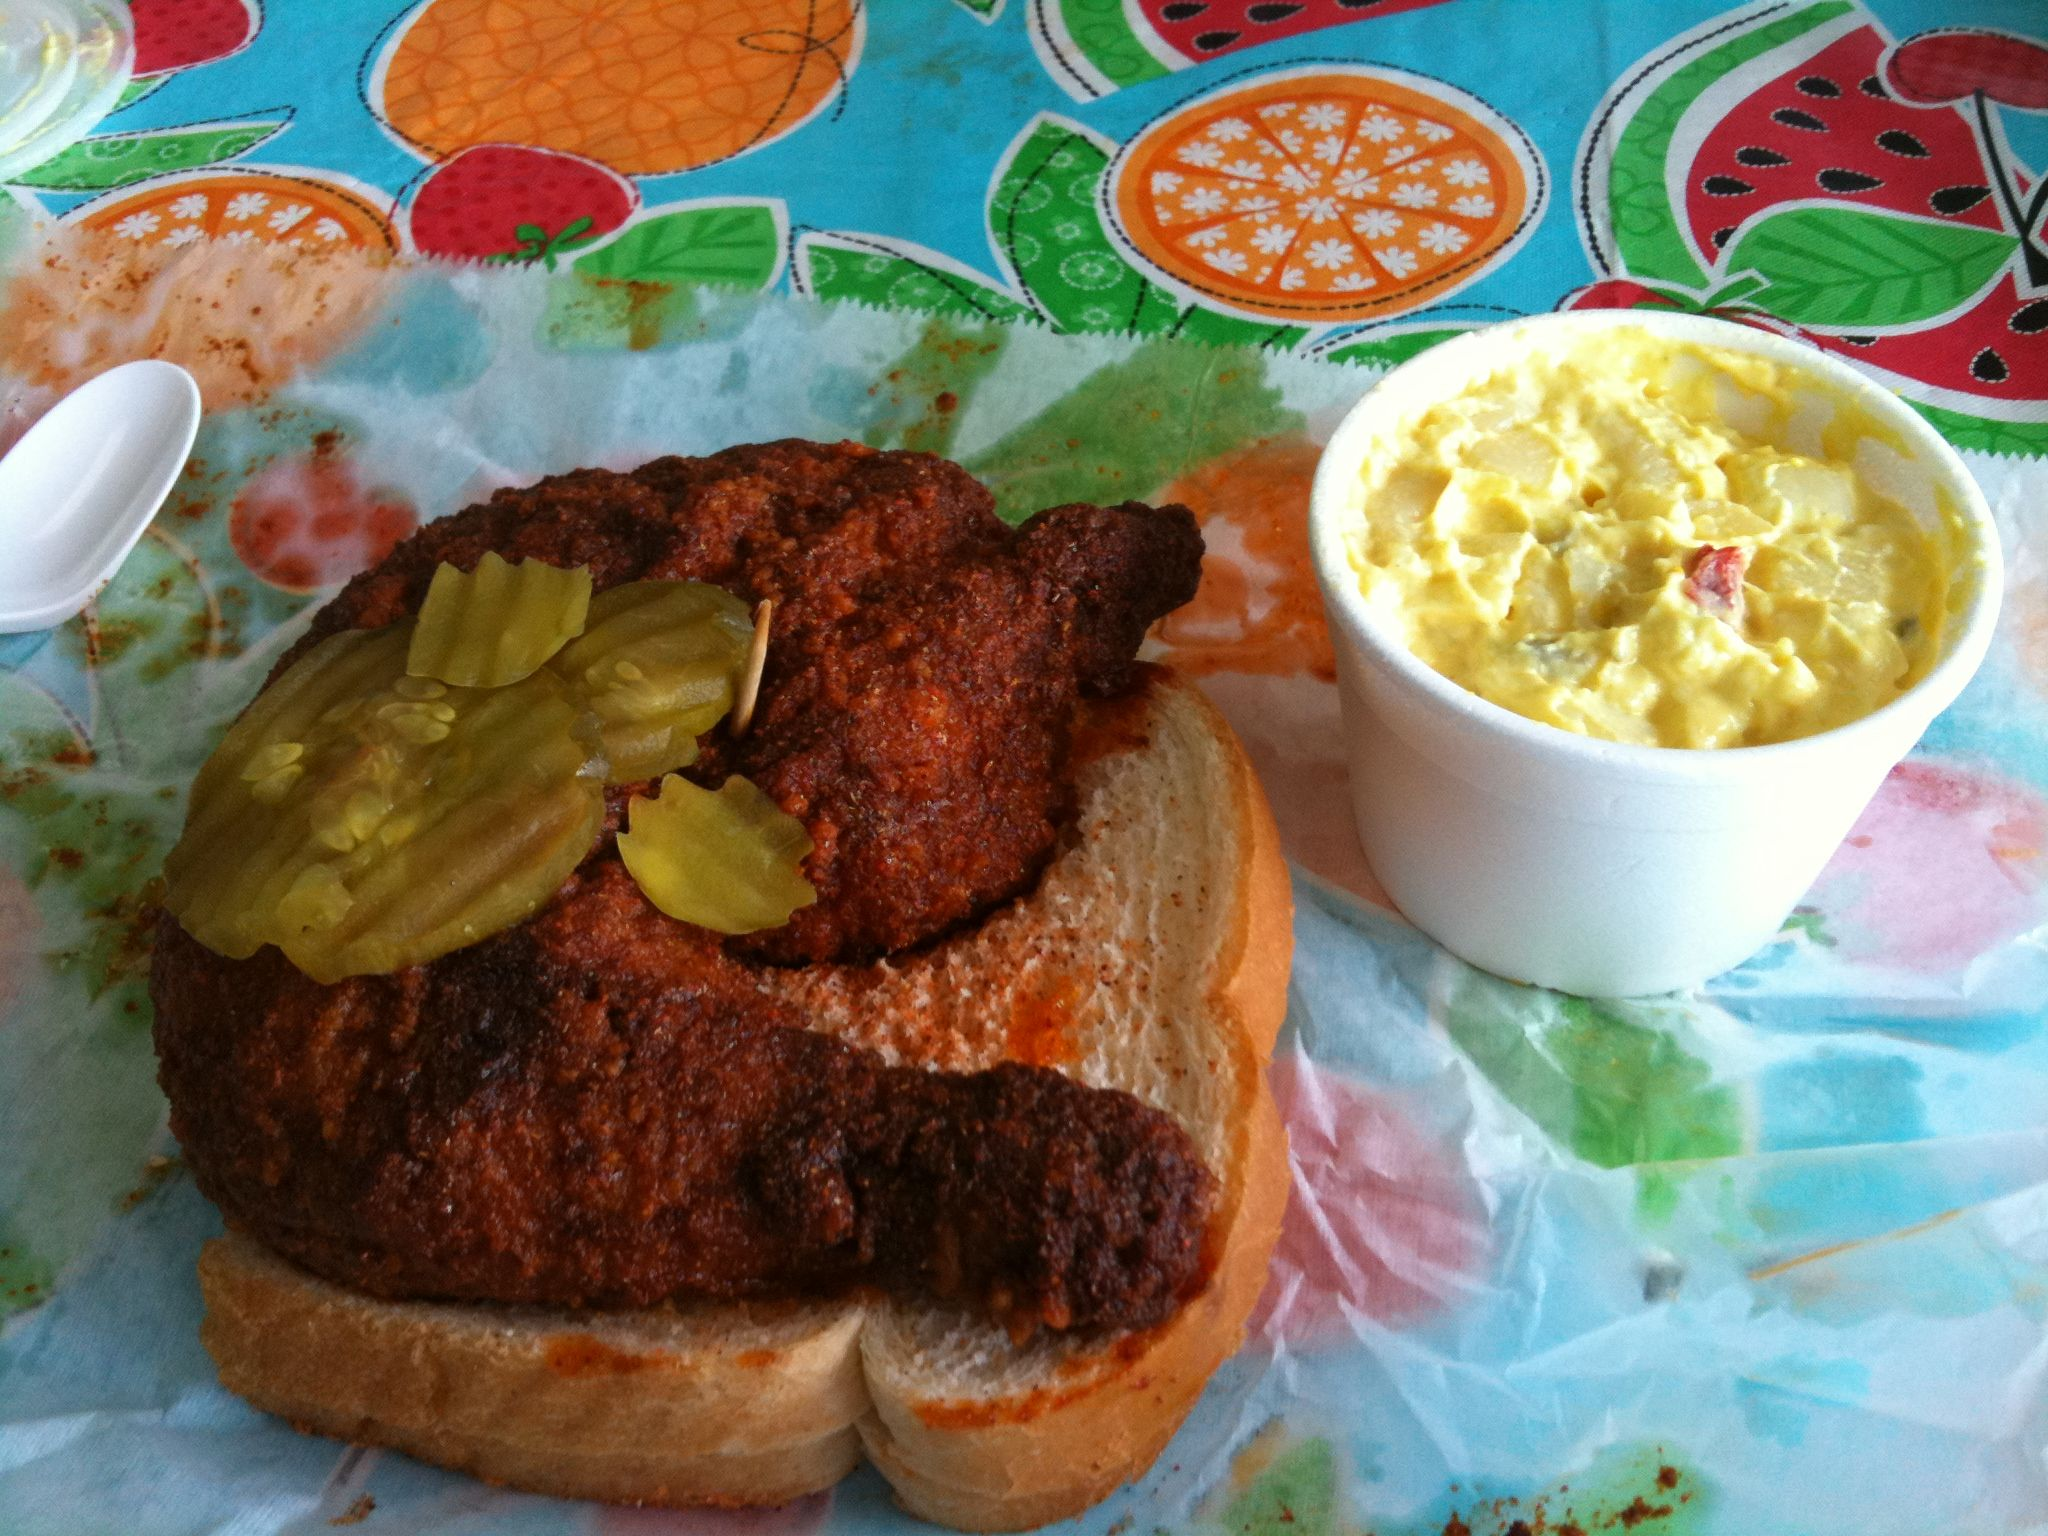 File:Princes hot chicken.jpg - Wikipedia, the free encyclopedia